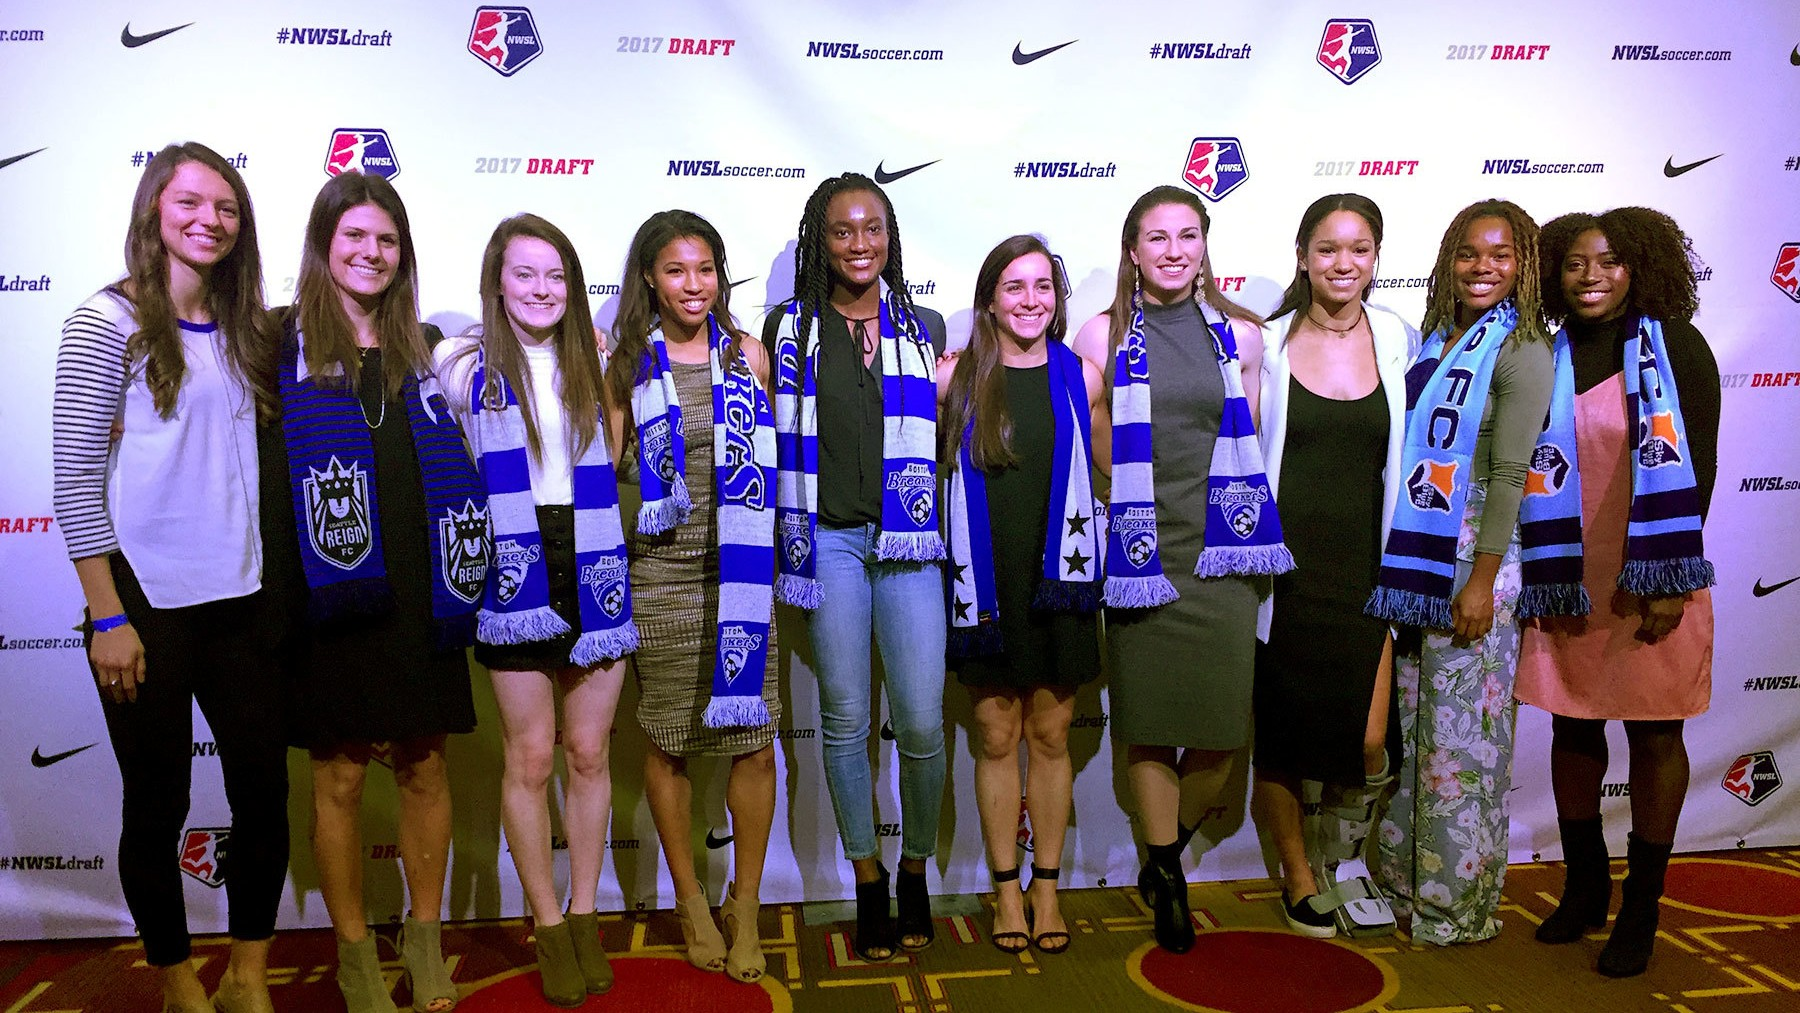 When It Comes to Diversity, Is Women's Soccer Making Progress?